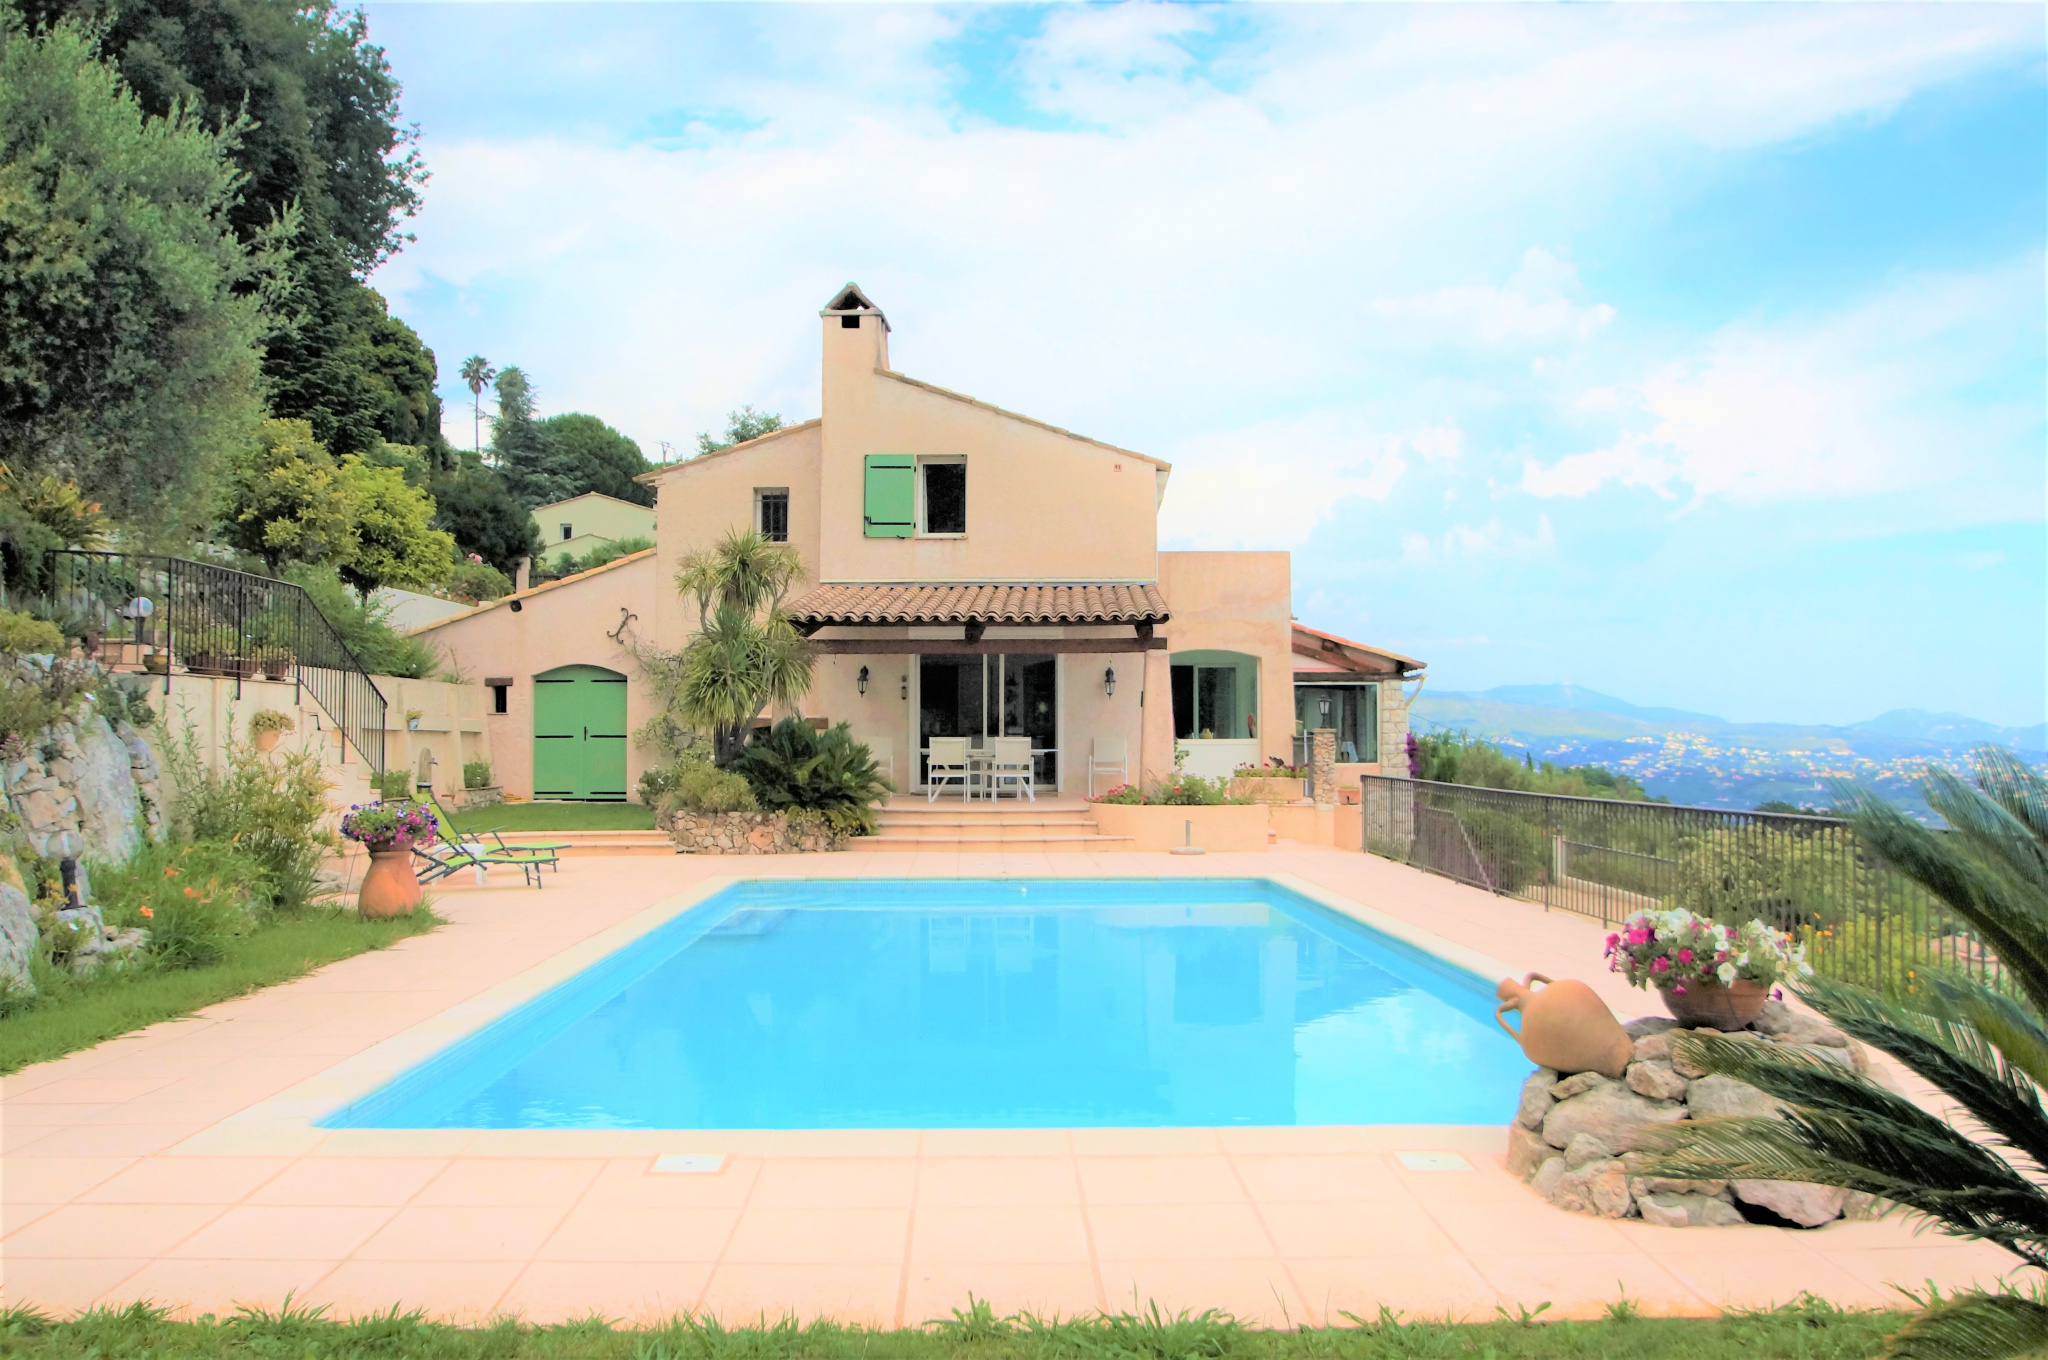 SAINT JEANNET - ARCHITECT VILLA (215m2) with POOL, SEA VIEW